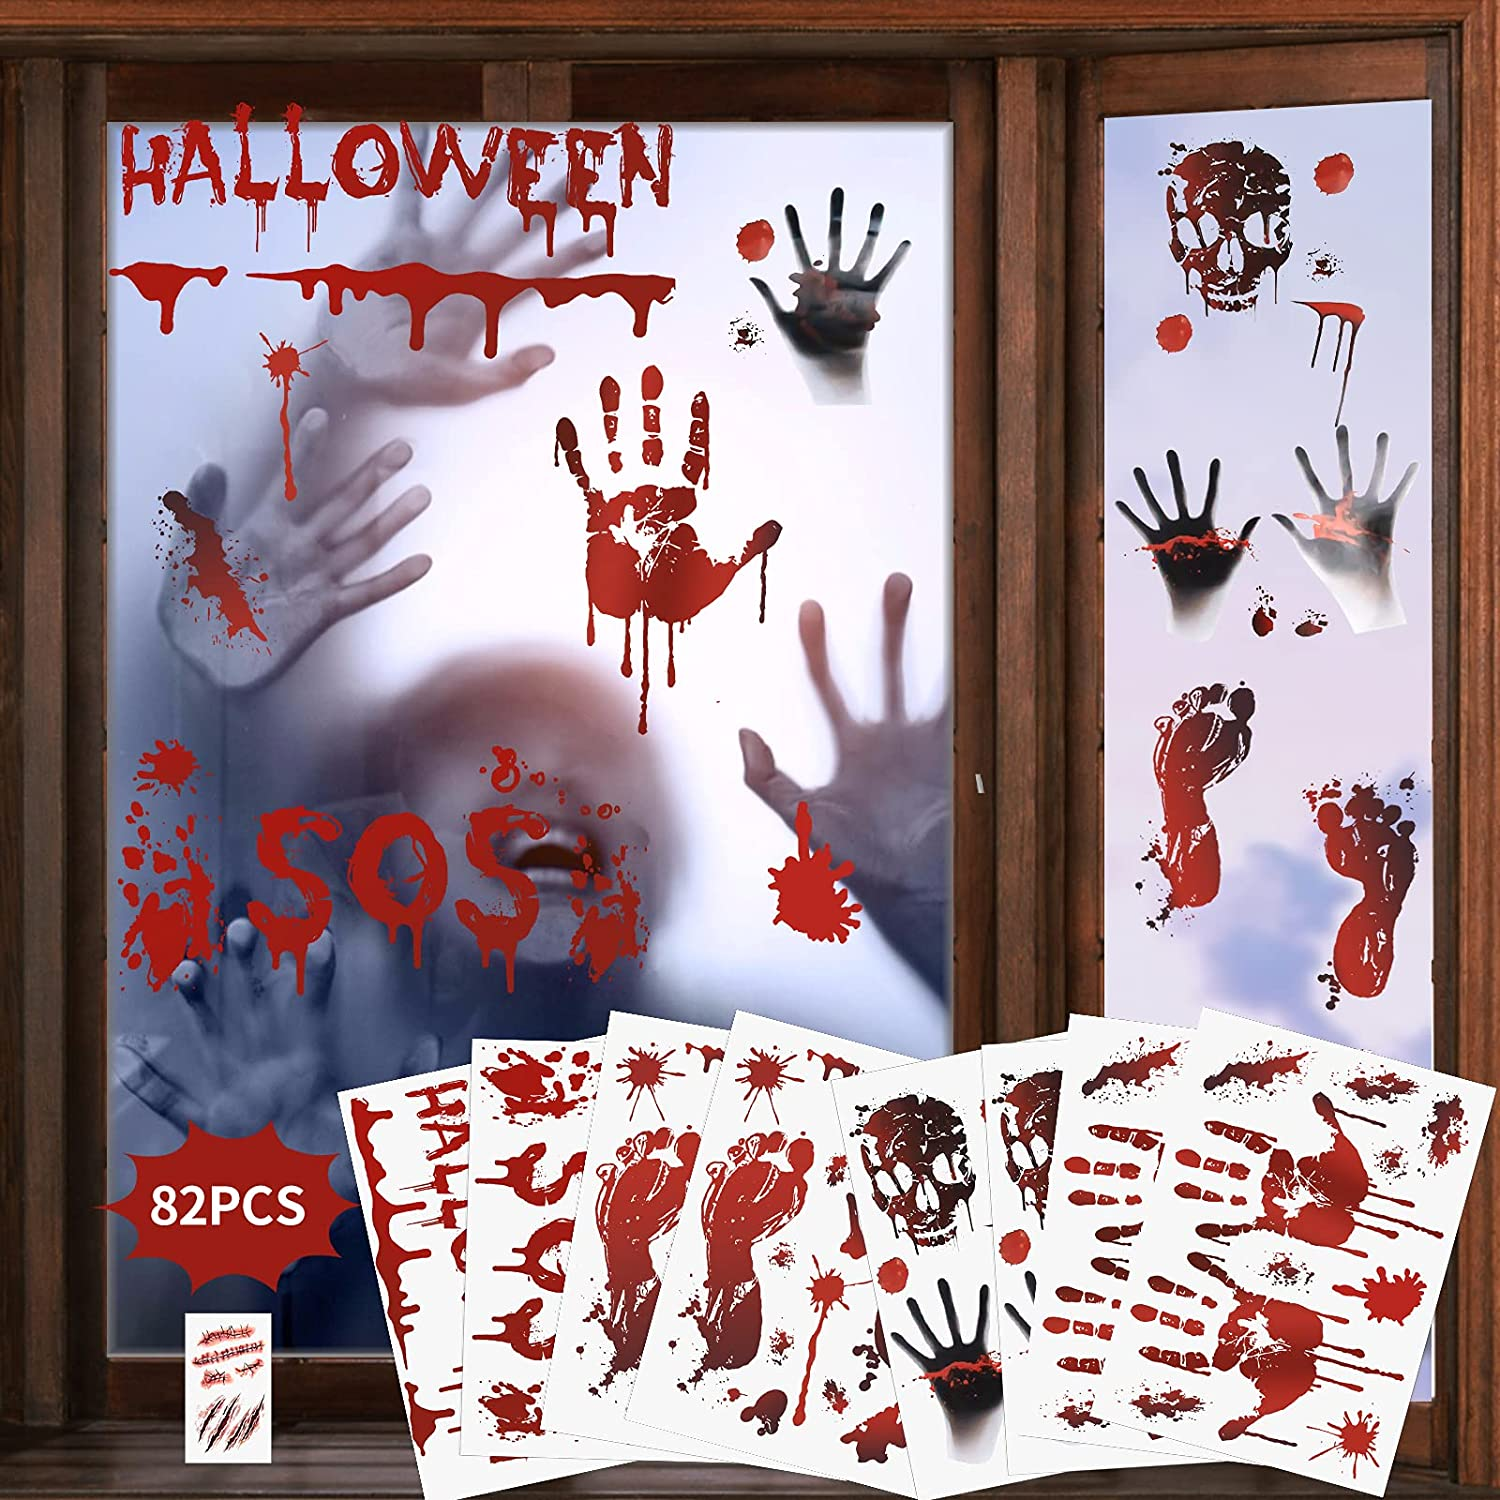 82PCS Halloween Decorations Window Stickers Tat Columbus Mall Zombie and Max 40% OFF Scars